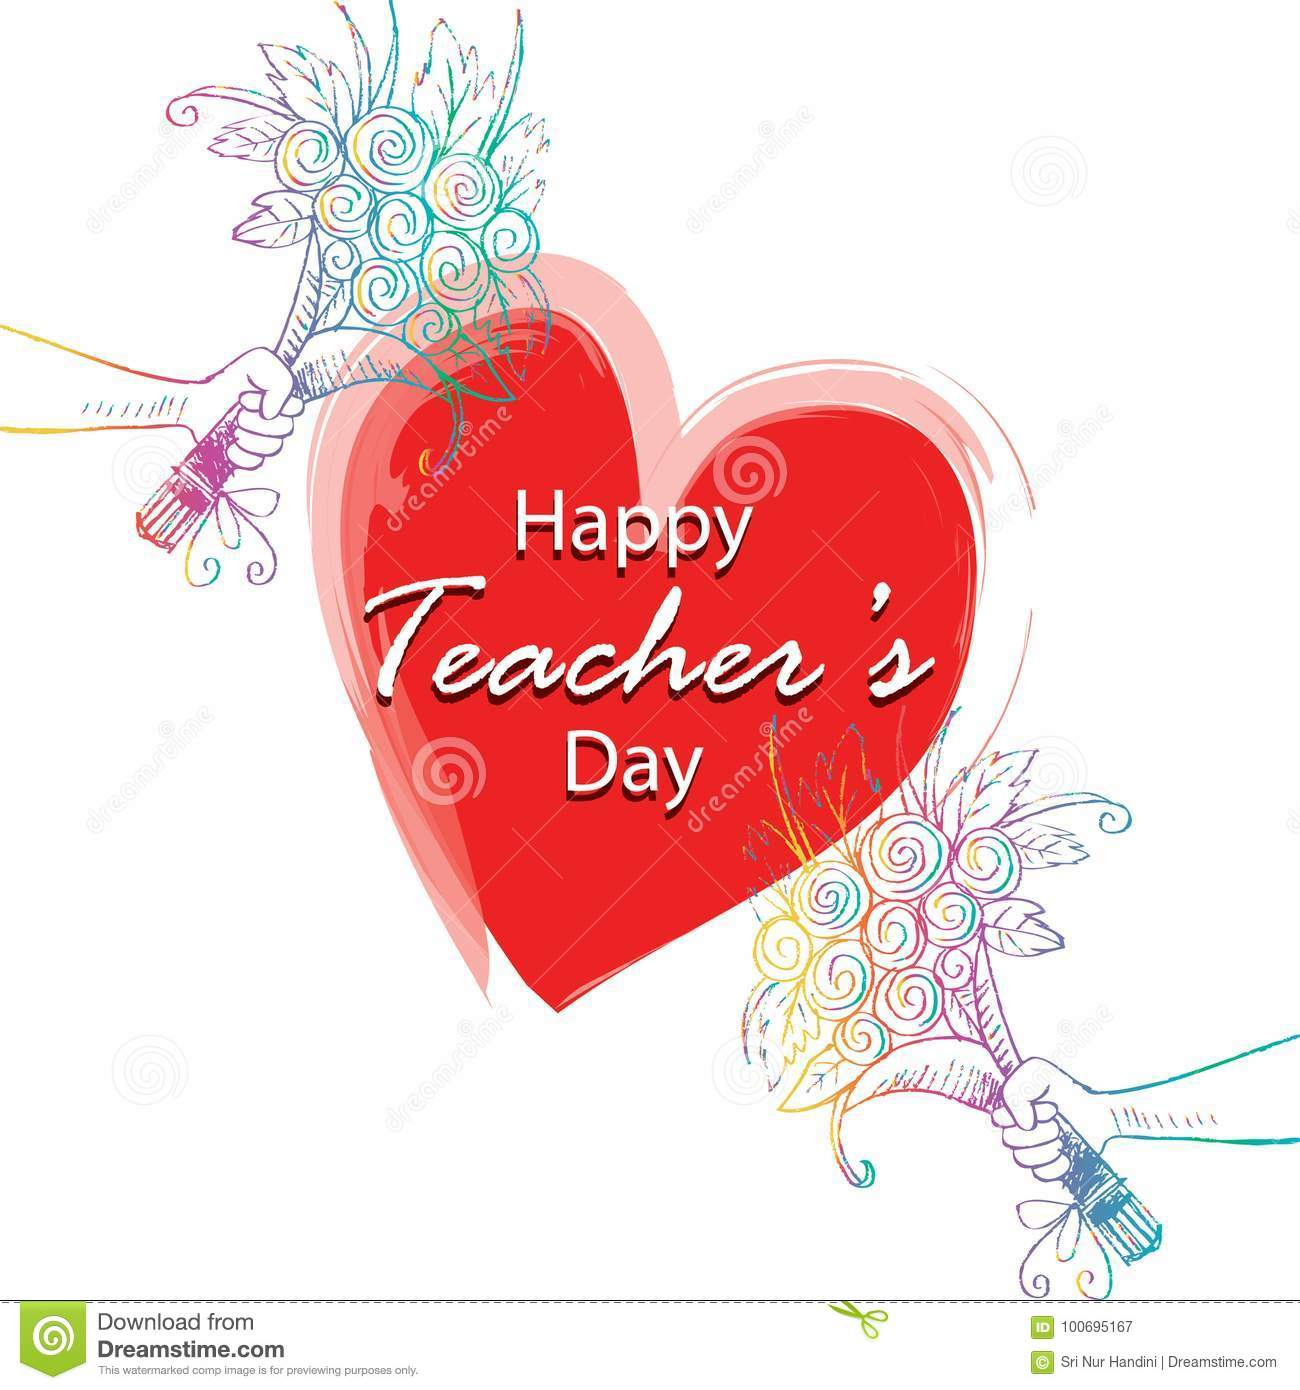 Images Of Happy Teachers Day Cards Labzada Wallpaper